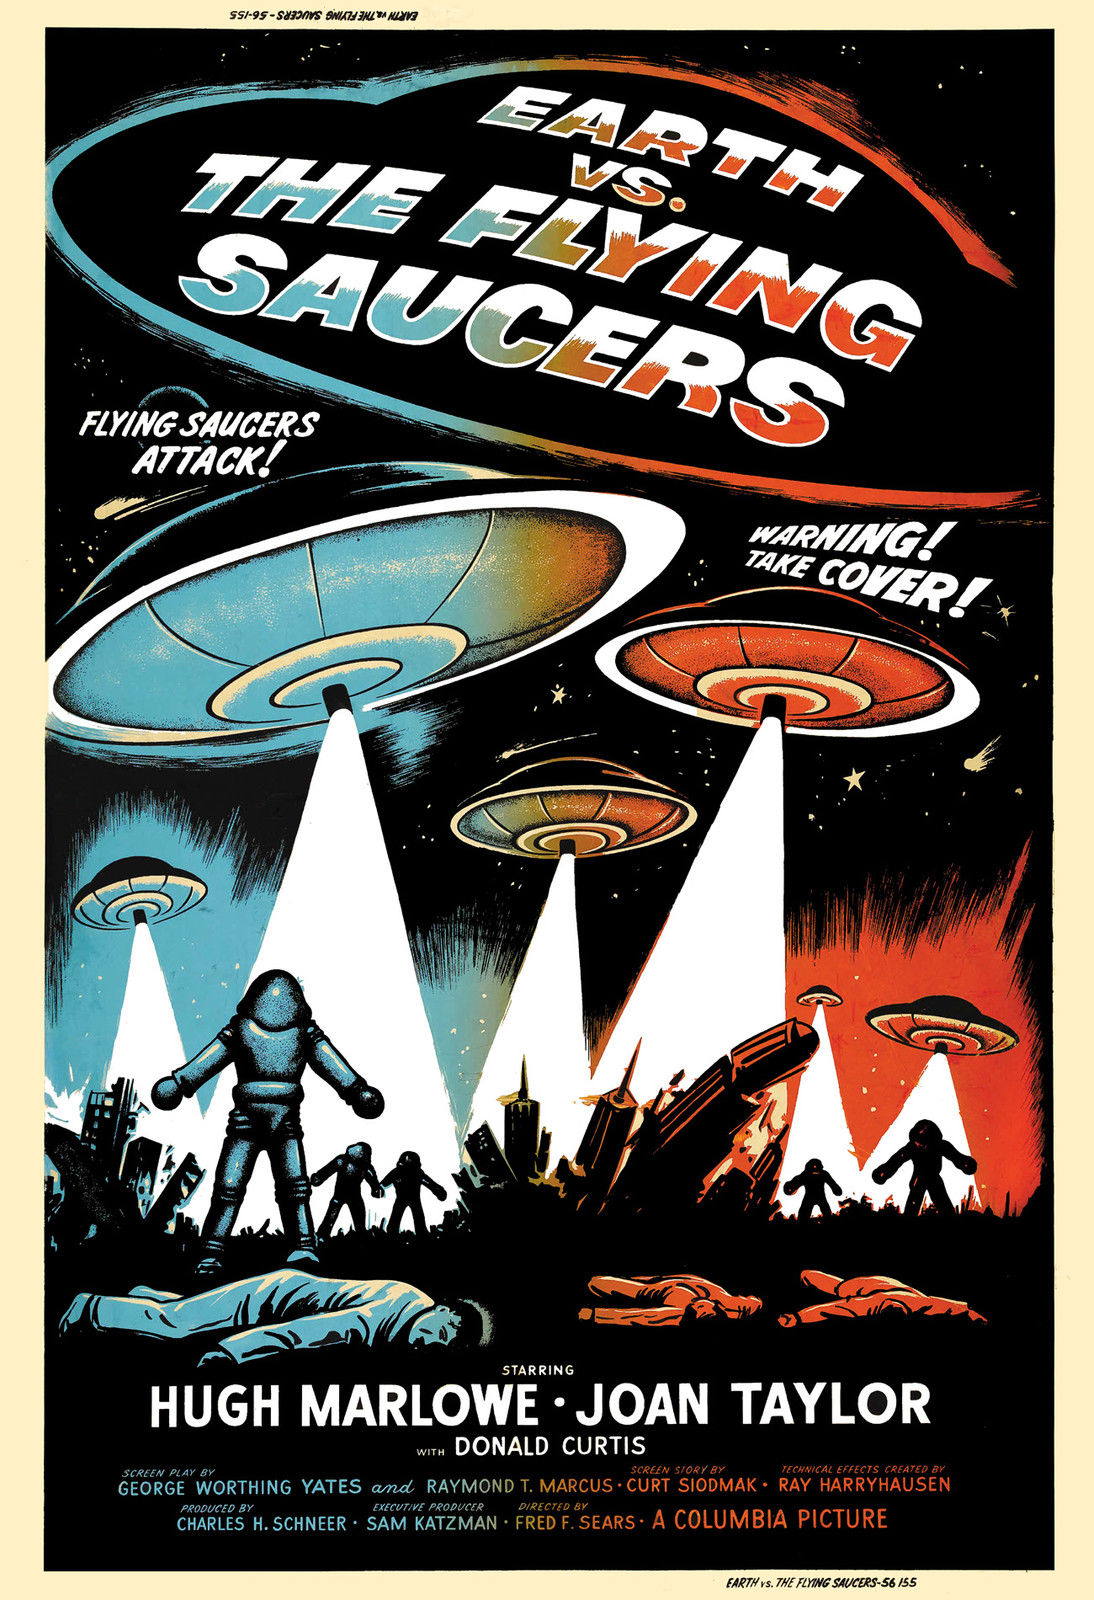 VINTAGE FLYING SAUCERS UFO MOVIE POSTER A4 PRINT